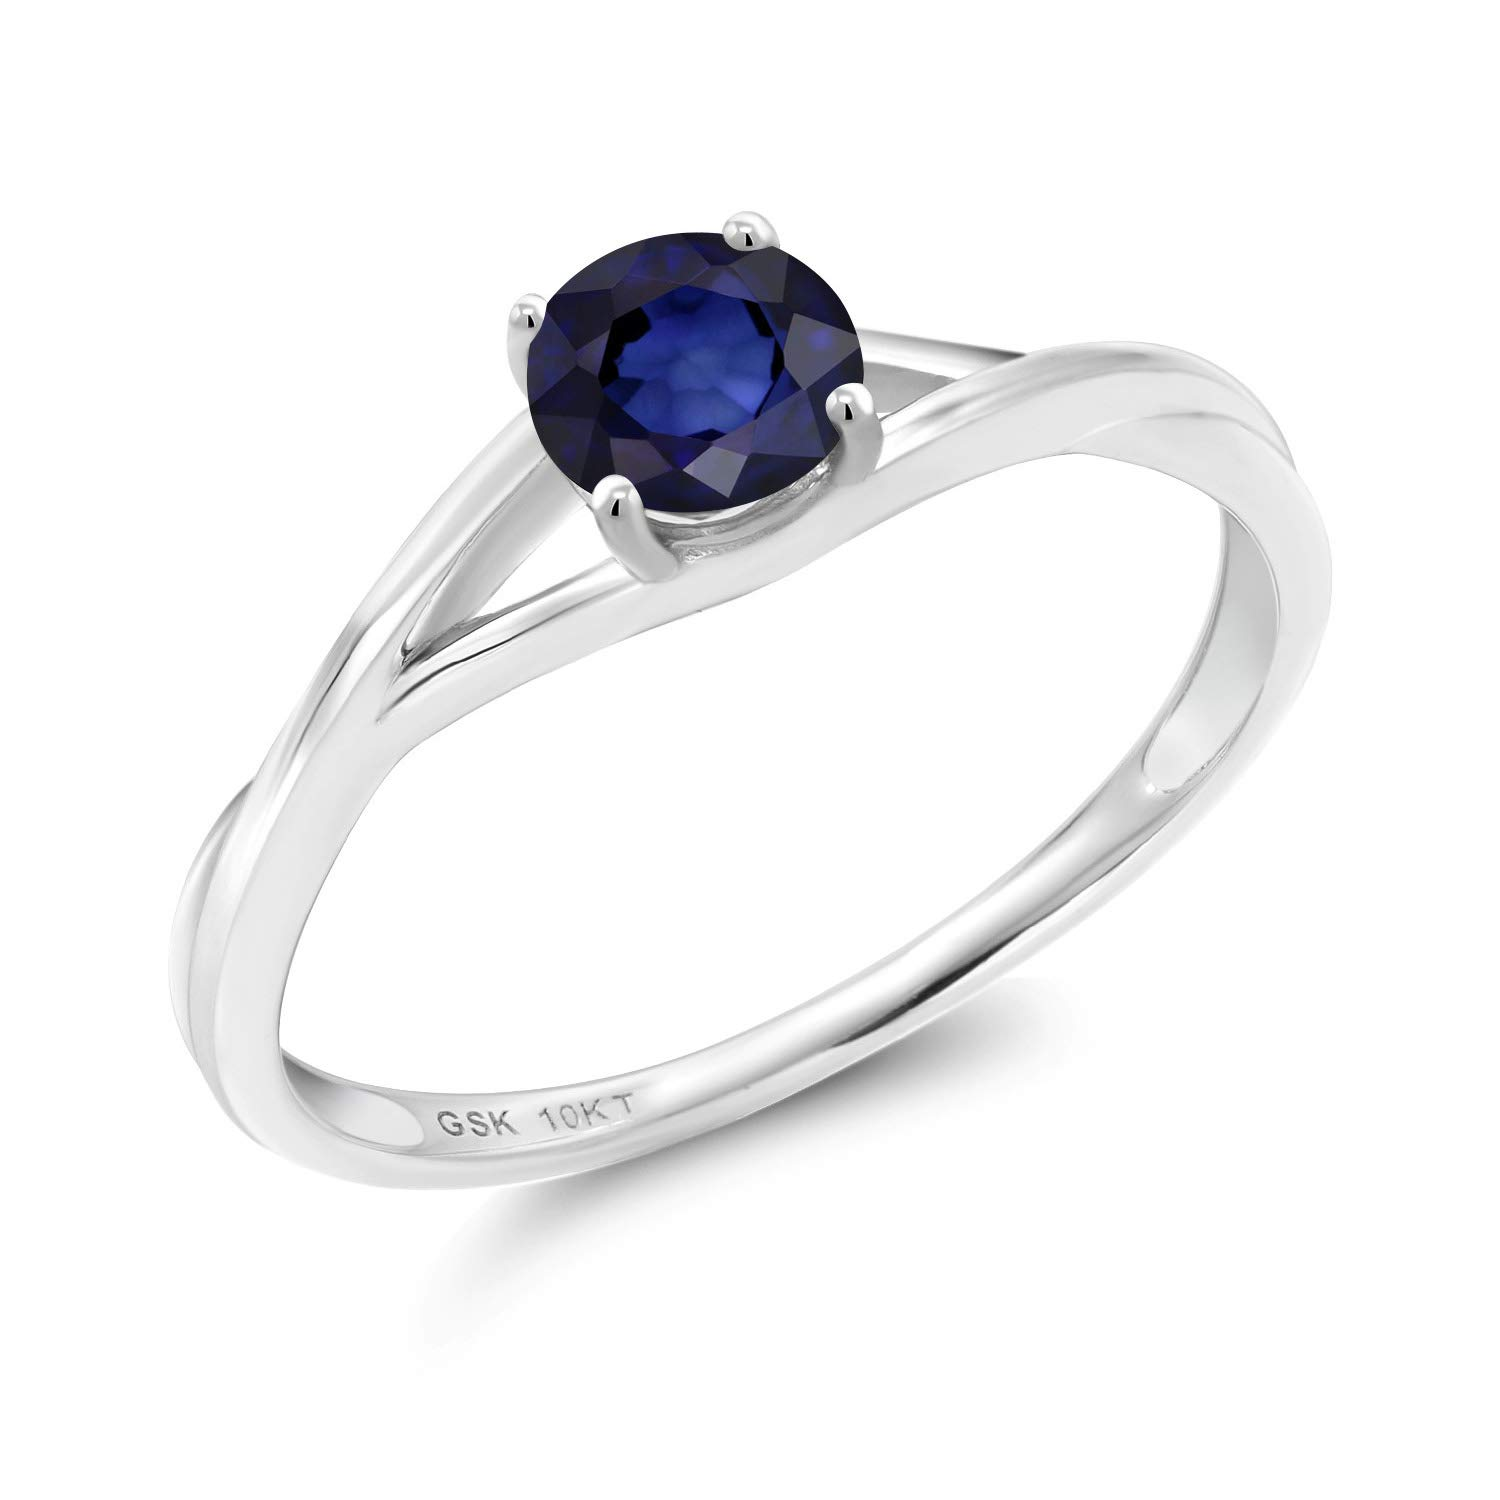 Gem Stone King 0.56 Ct Round Blue Sapphire 10K White Gold Solitaire Engagement Ring (Size 5) by Gem Stone King